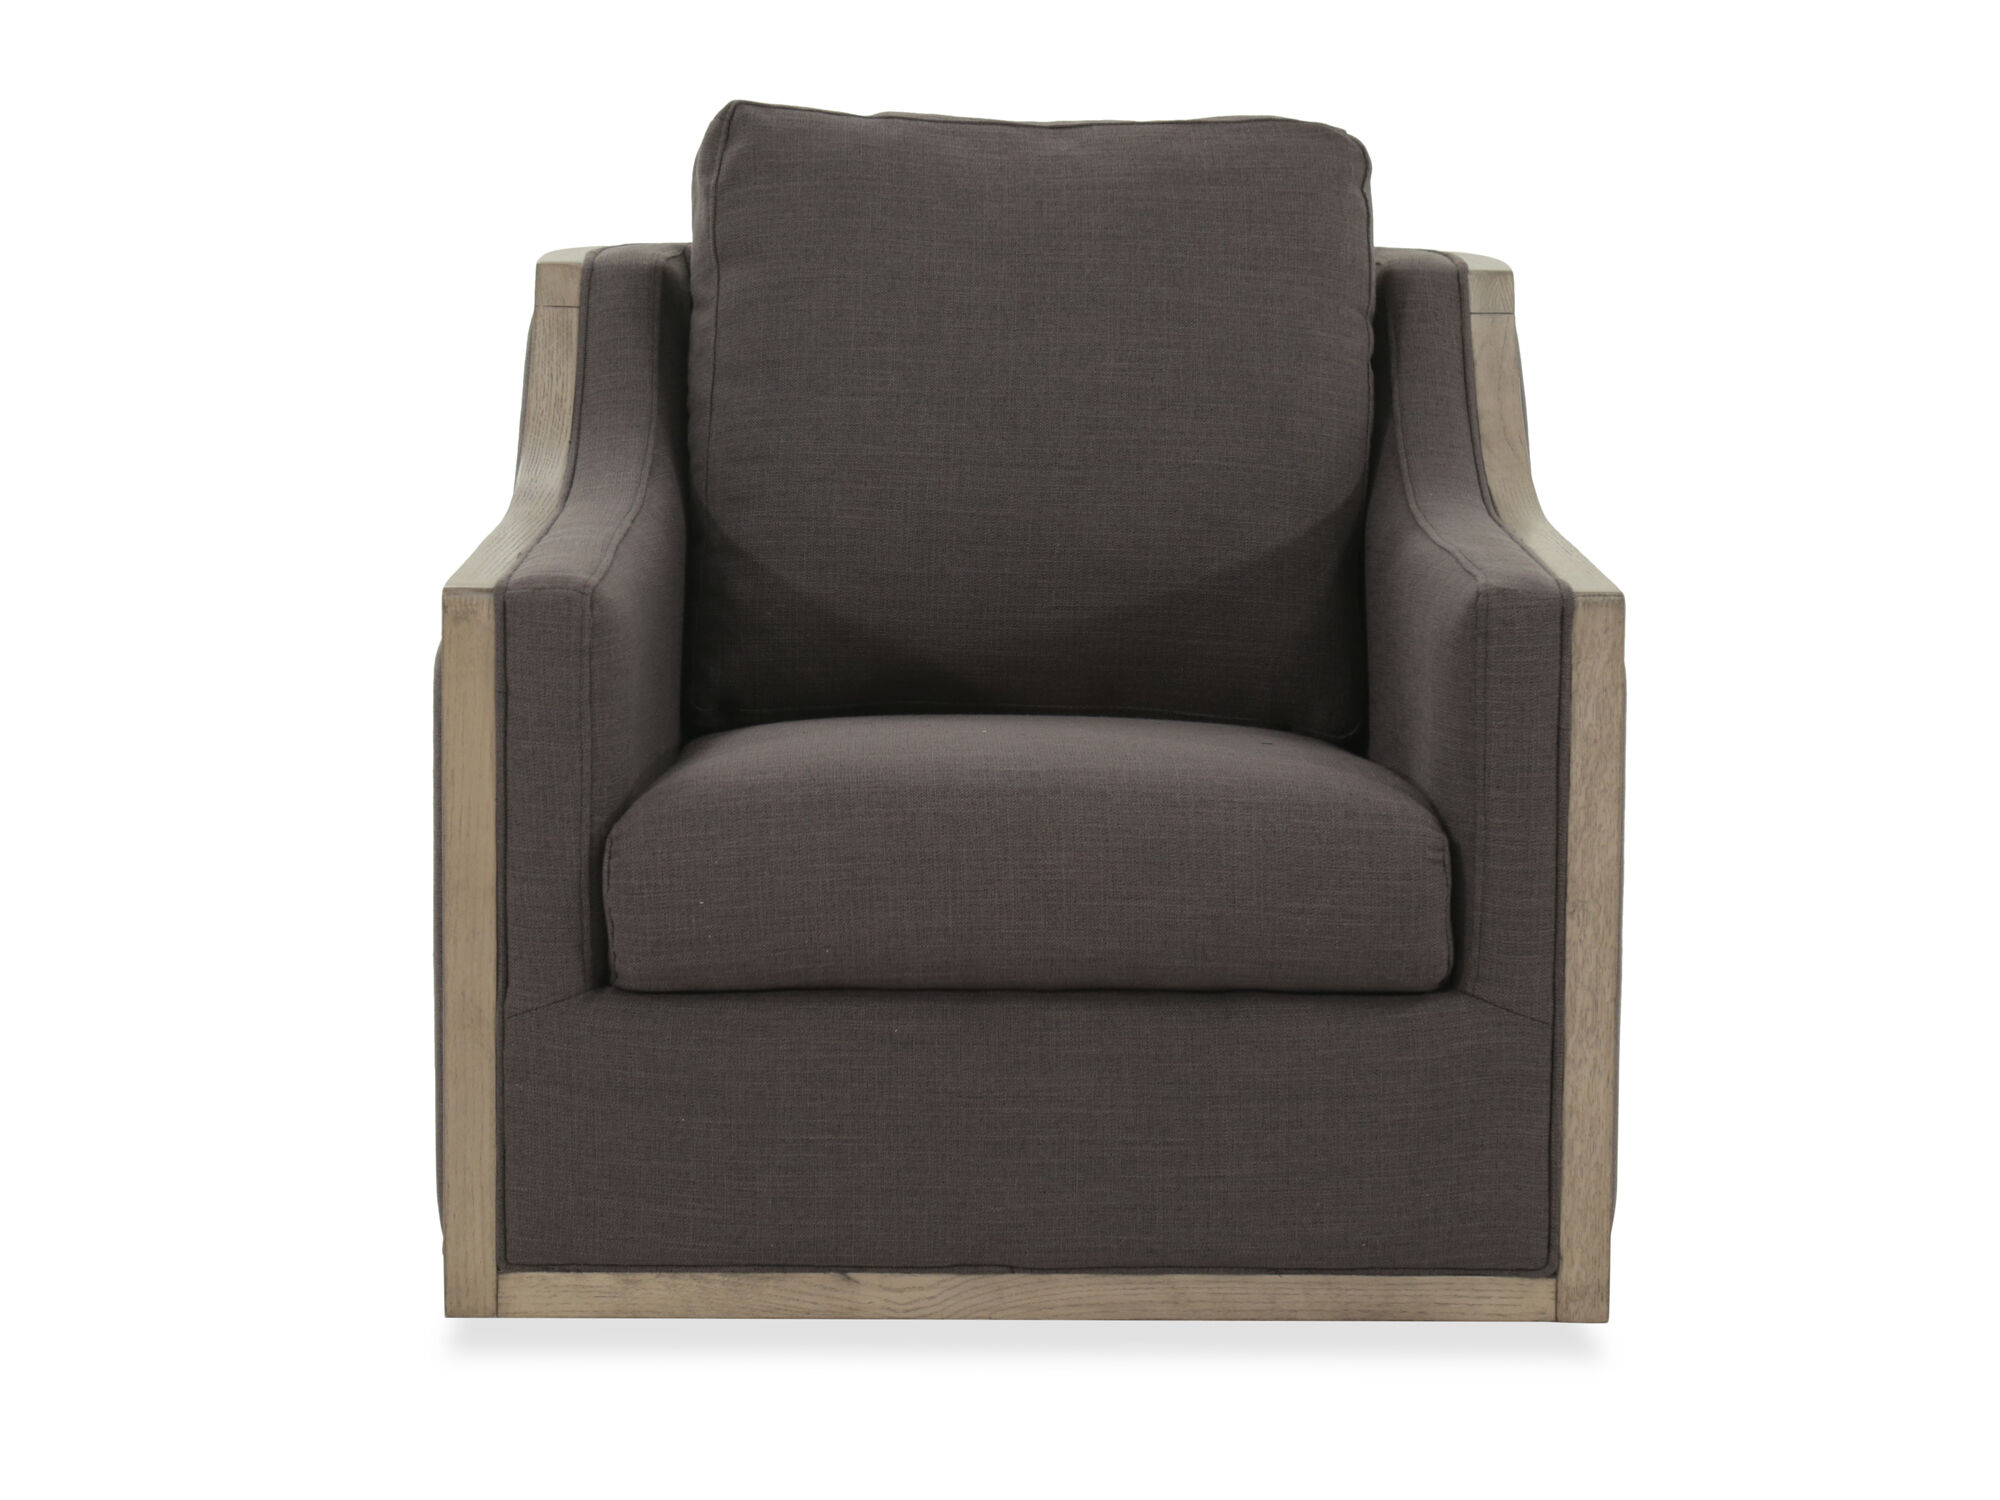 Two Tone Contemporary 34u0026quot; Swivel Chair In Black Two Tone Contemporary  34u0026quot; Swivel Chair In Black